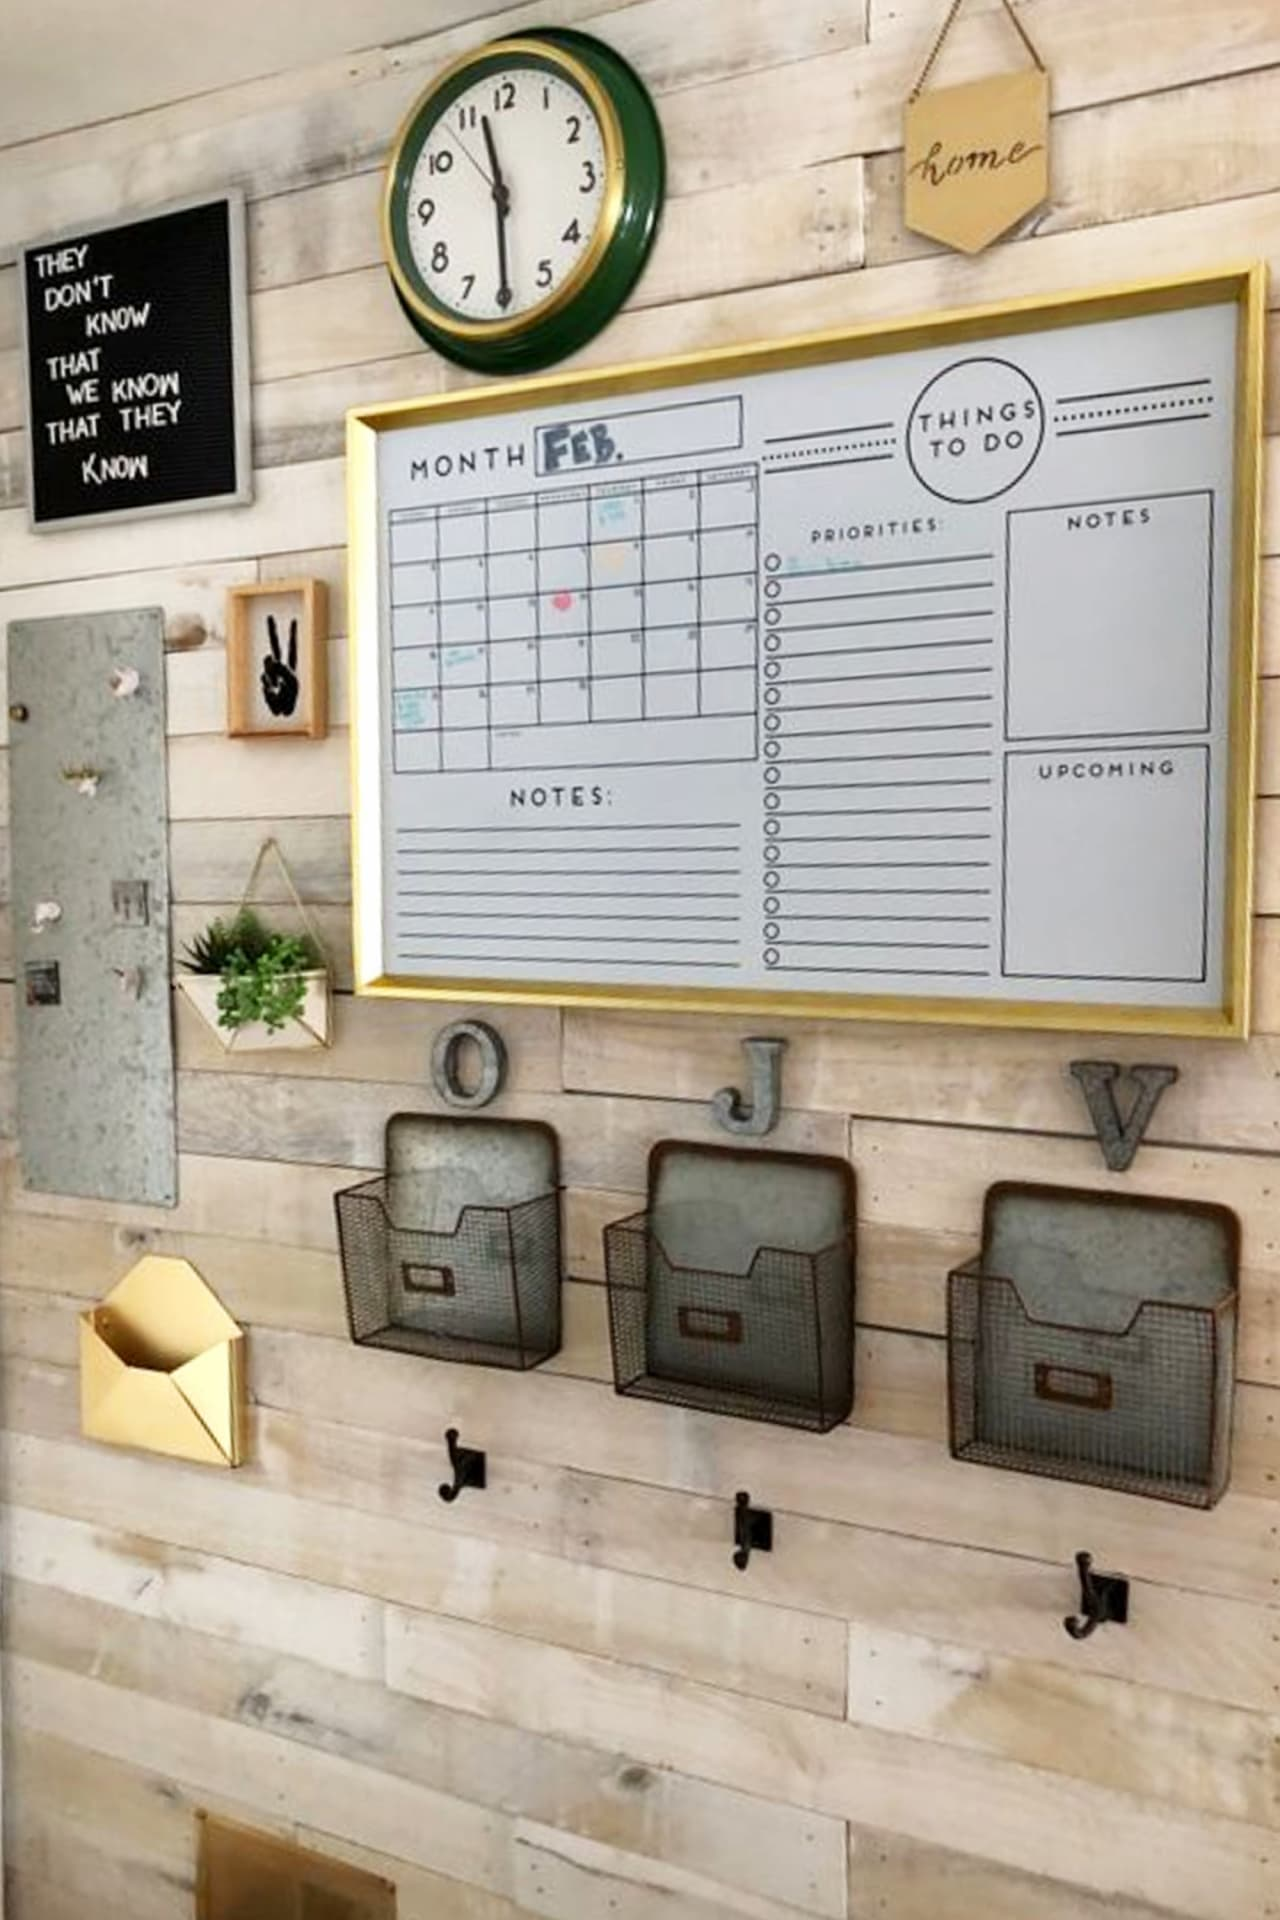 Home Command Center Ideas (LOVE the pallet wall - so rustic farmhouse looking!) How to make a home command center or family organizaton center on your wall.  These easy DIY family command center wall ideas are so helpful for getting organized and STAYING organized (and they're pretty too!)  Add some family command center printables, baskets, shelves, chalkboards and a calendar and you're all set!